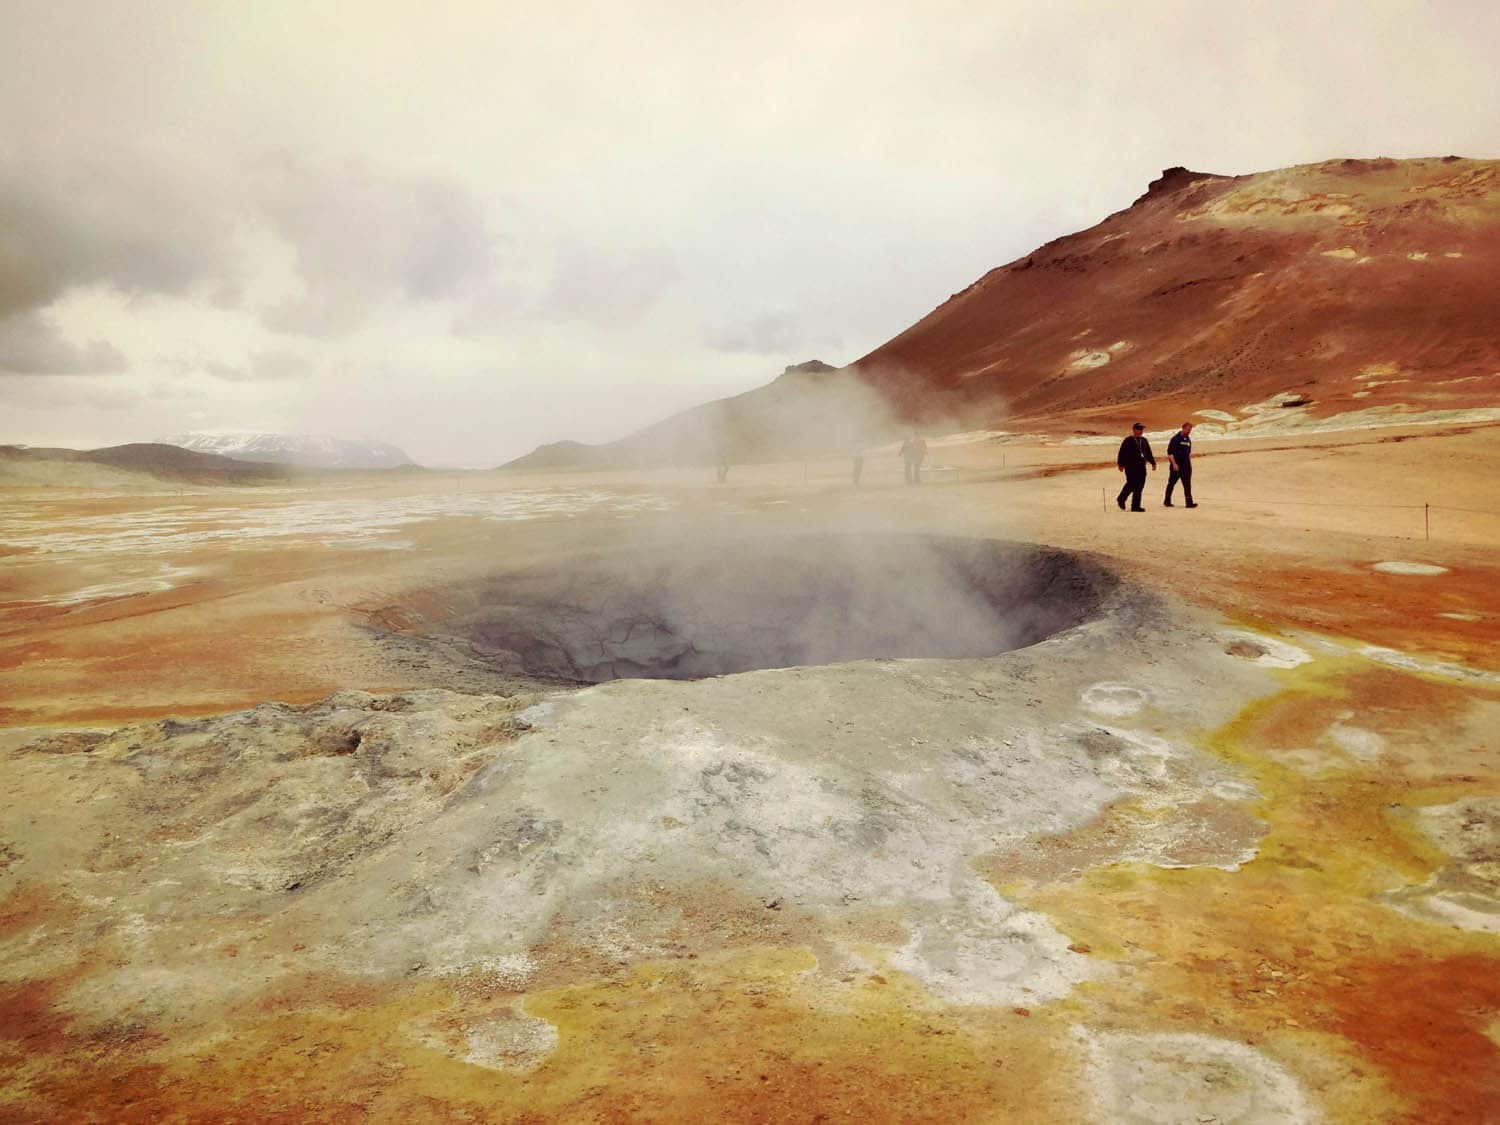 Iceland self drive tour 8 days